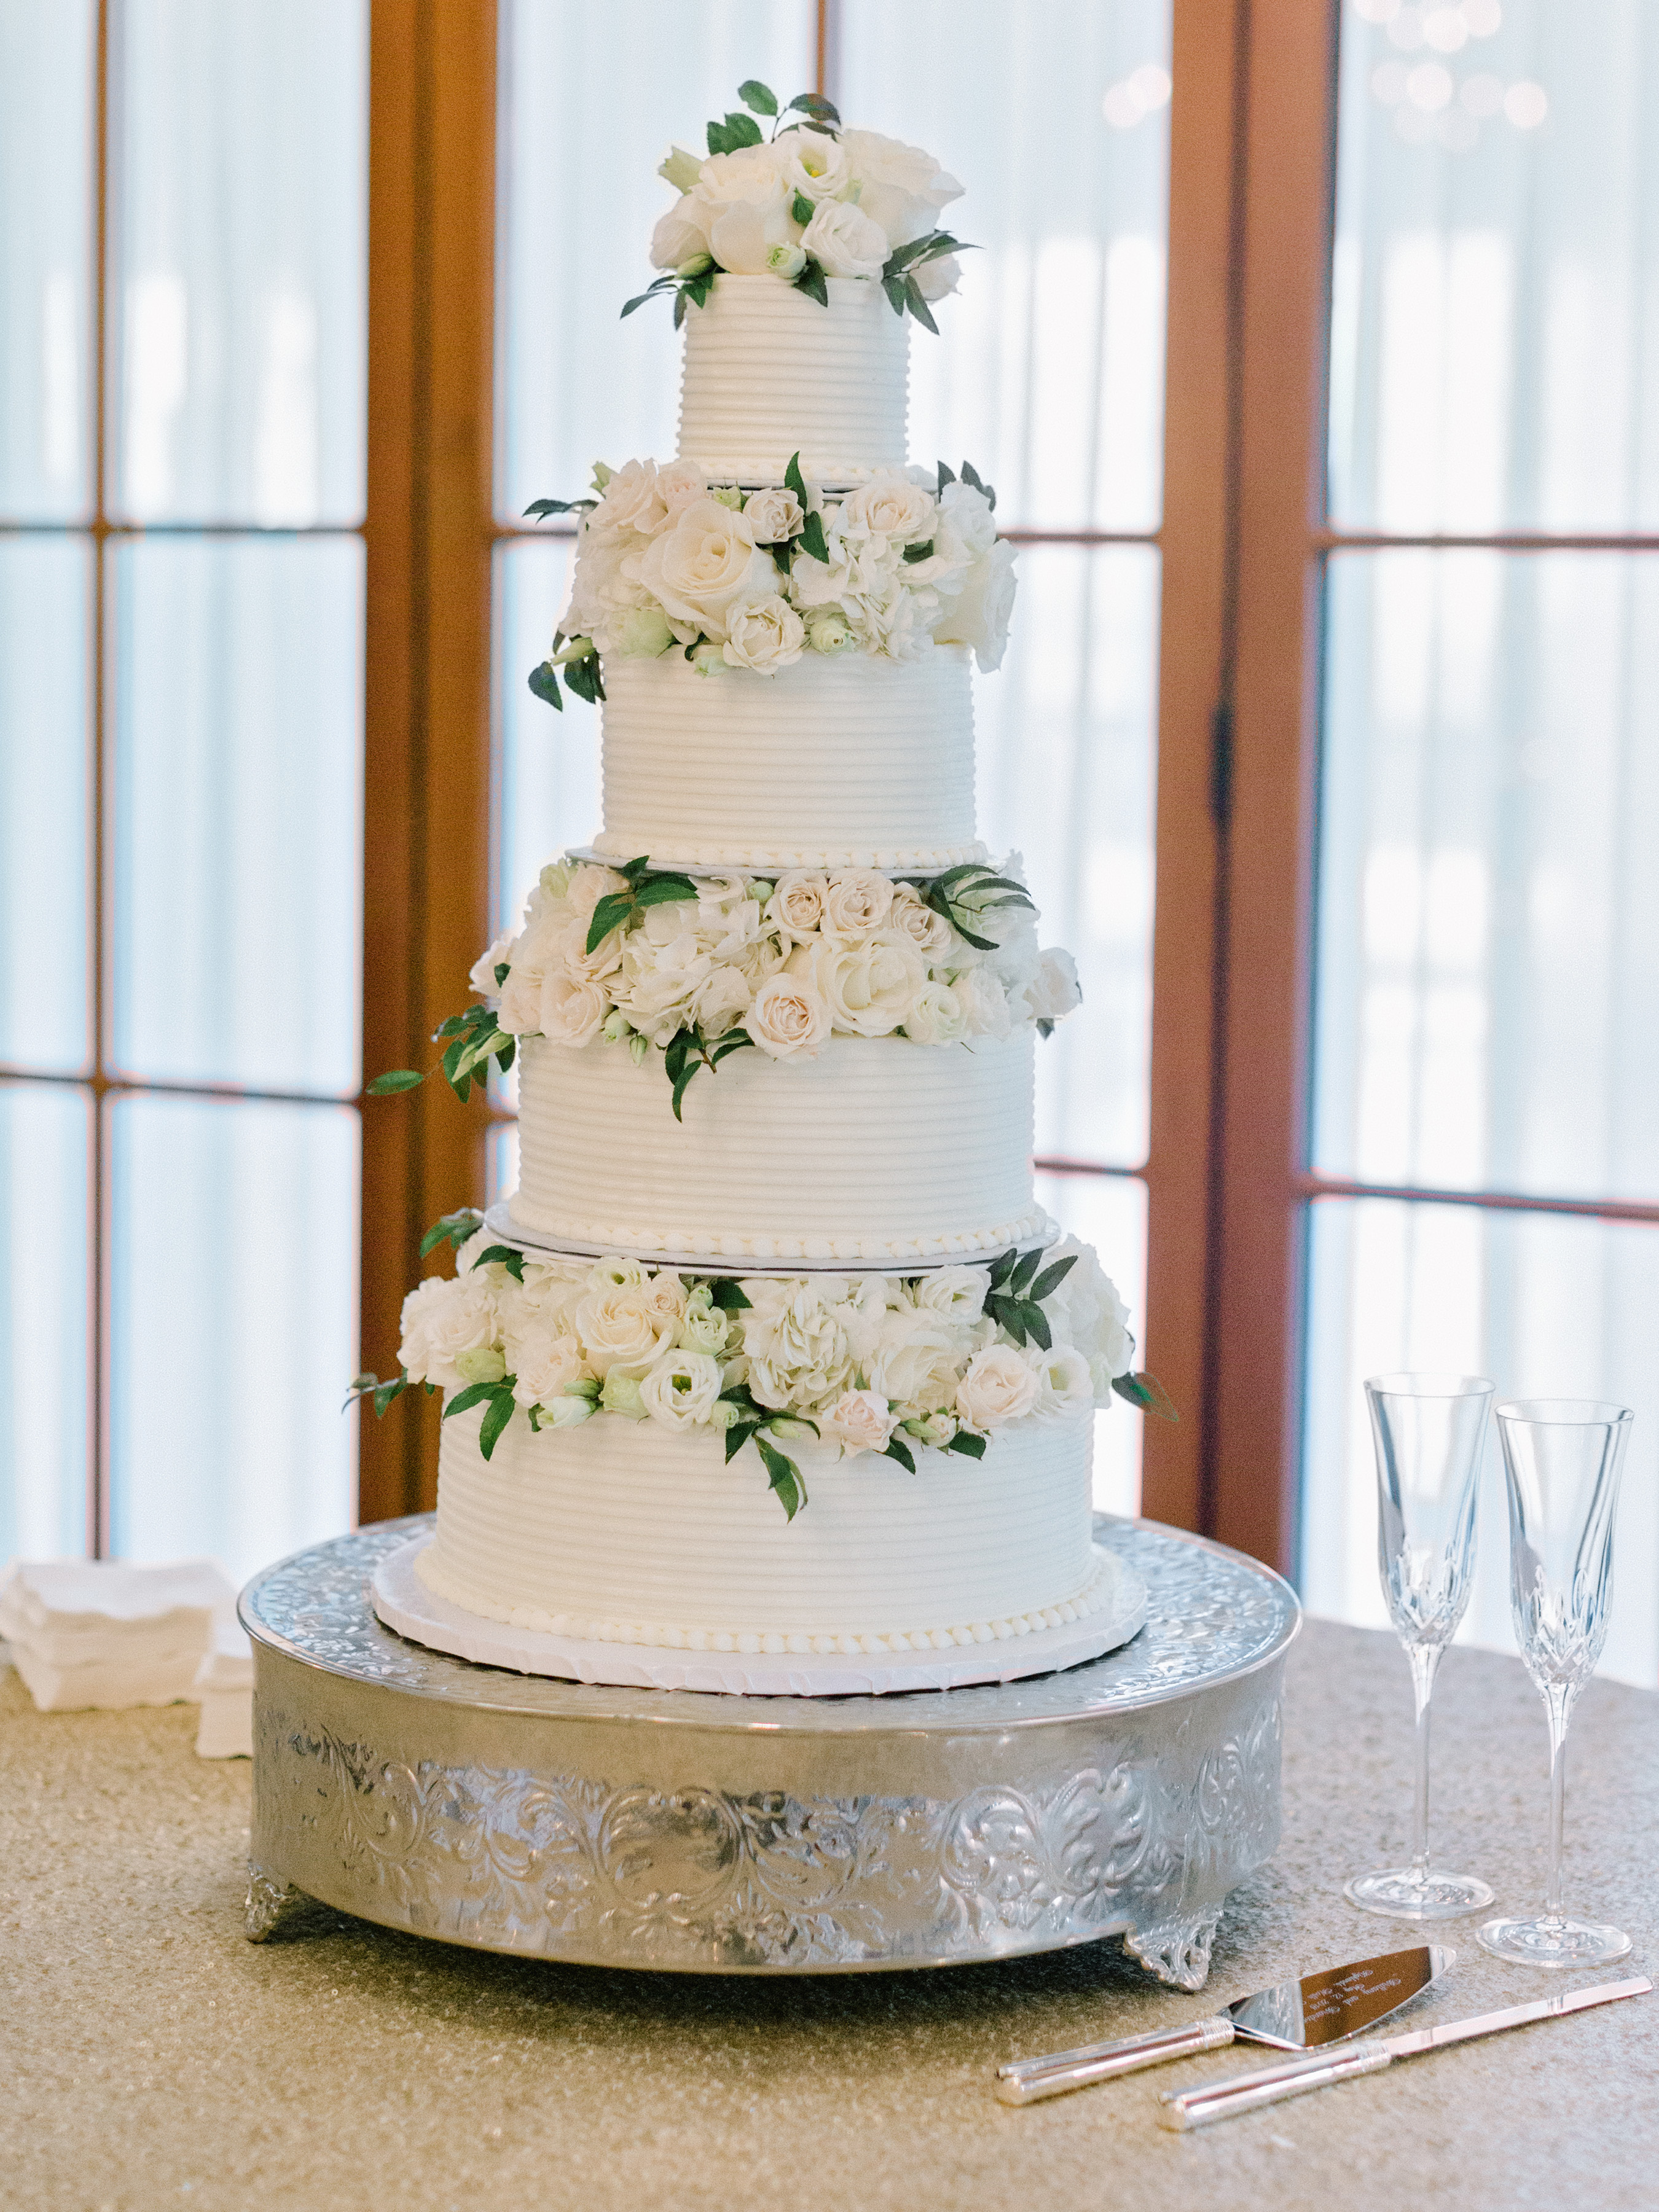 cakes with floral tiers bloom-filled horizontal icing ridges